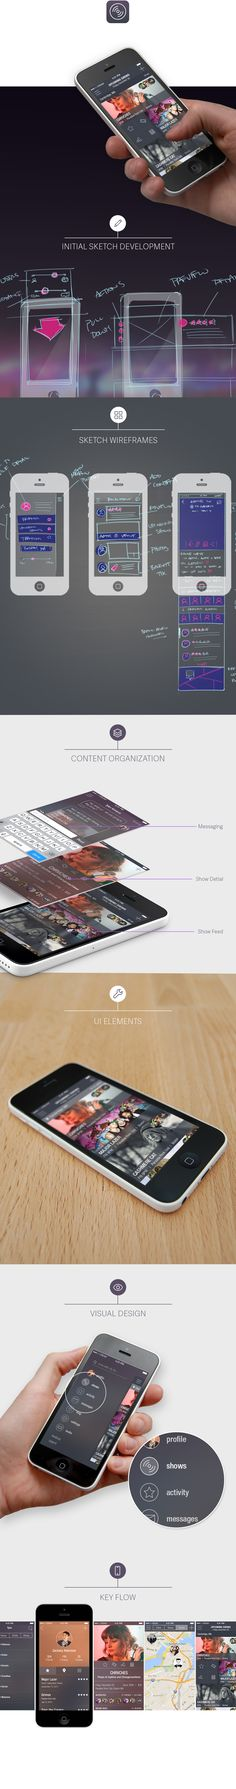 RockLobby Mobile App Redesign by Zach Robinson, via Behance